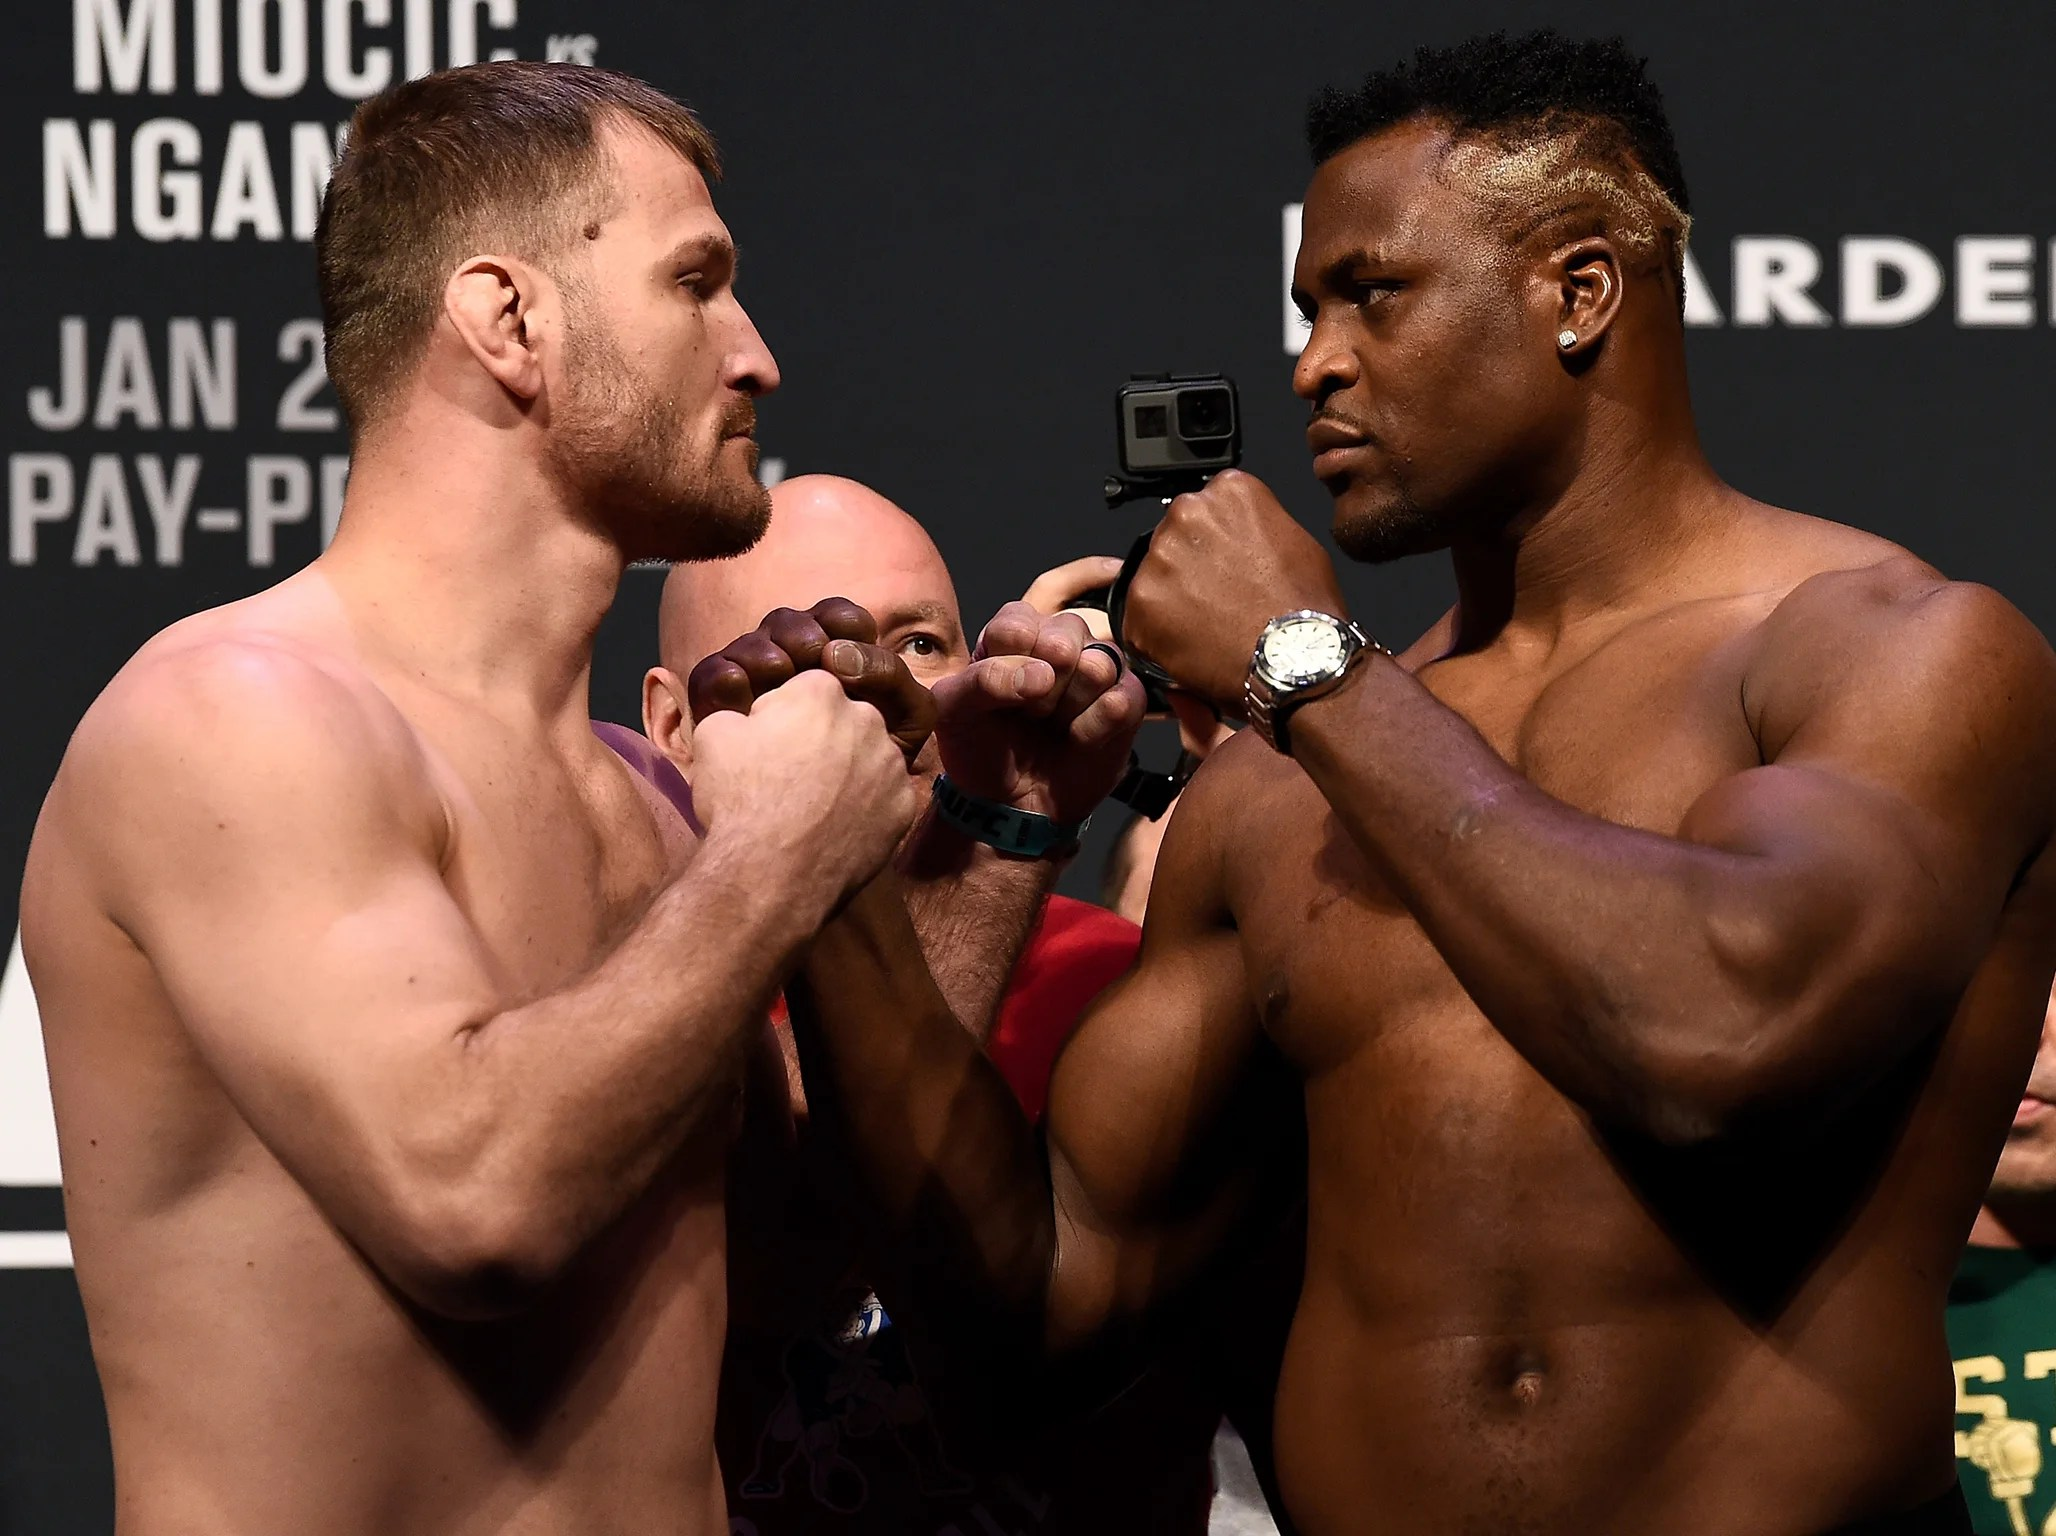 Ufc 220 Miocic Vs Ngannou Preview